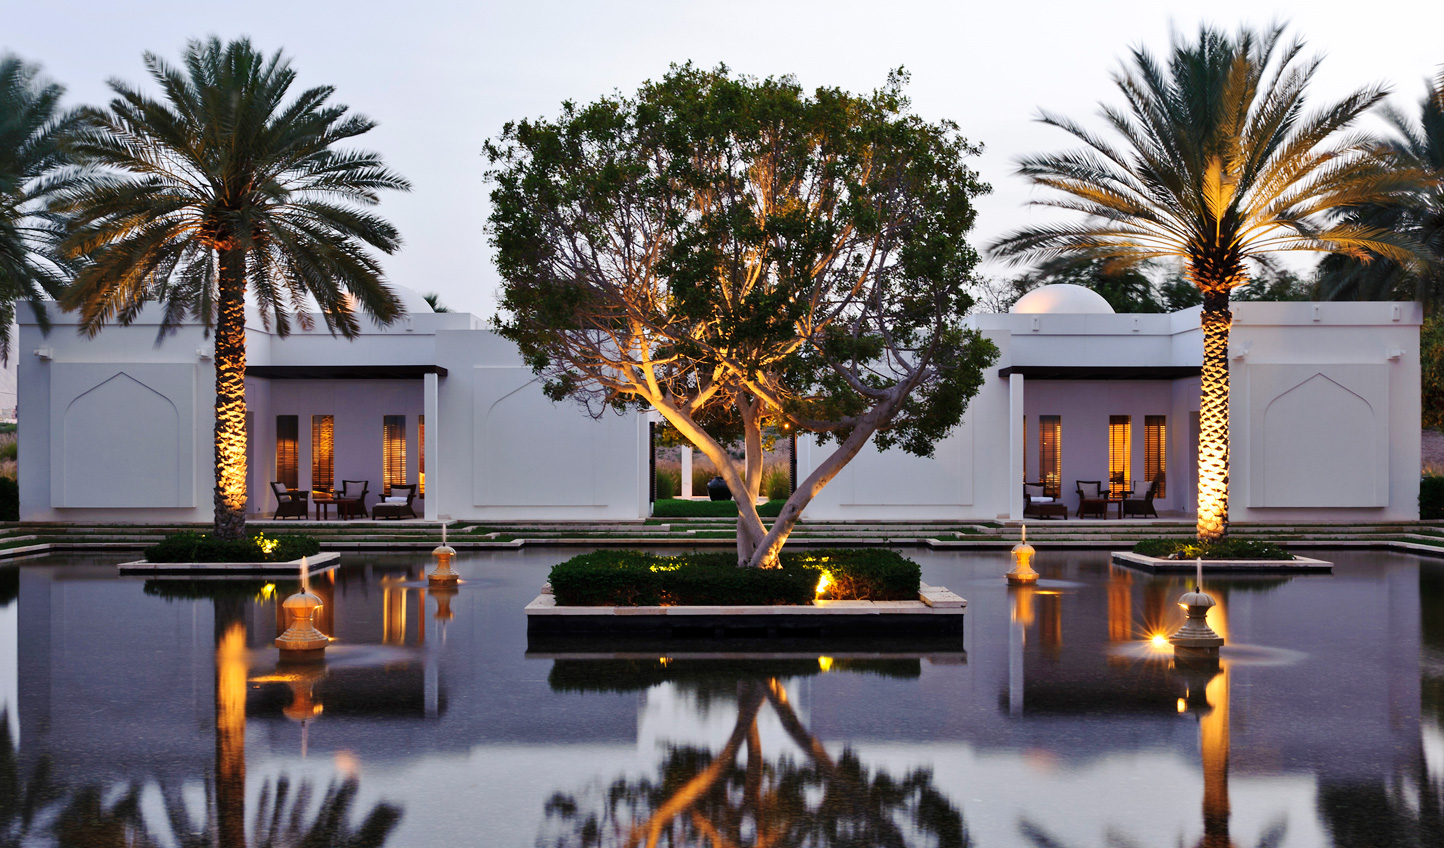 Slip into a zen like state at The Chedi